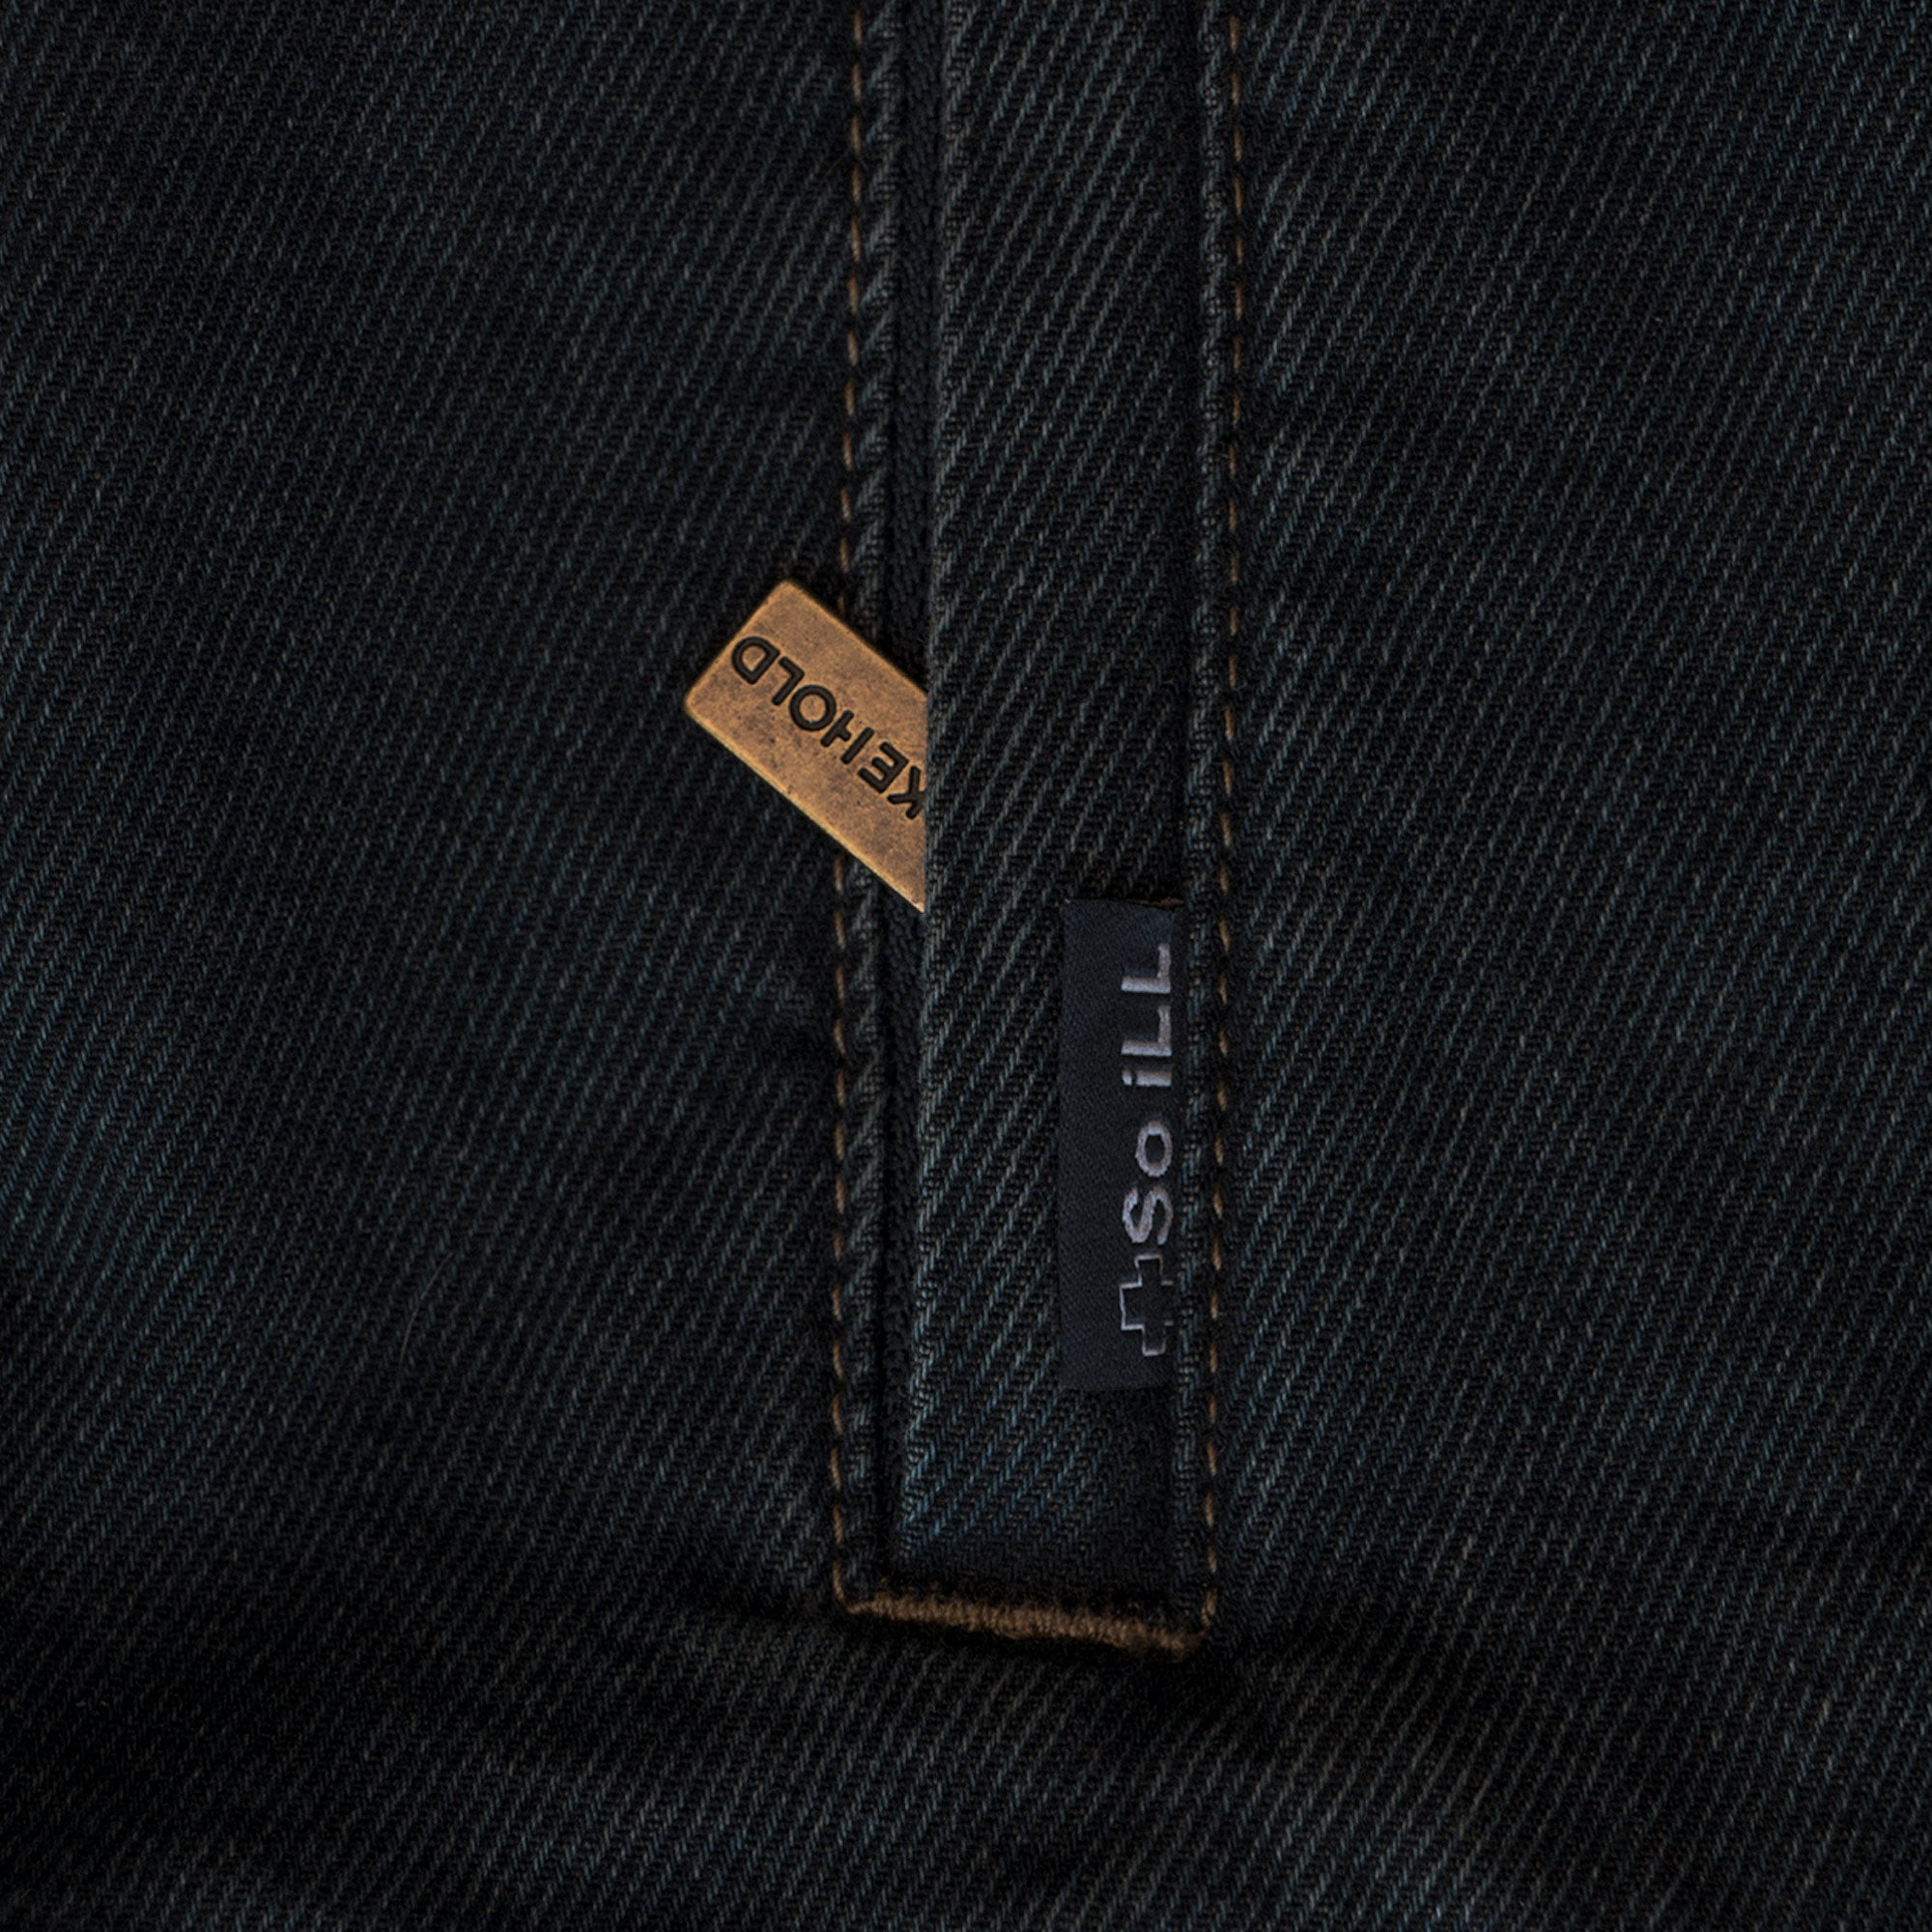 a close shot of the metal zipper on the so ill unisex denim jacket